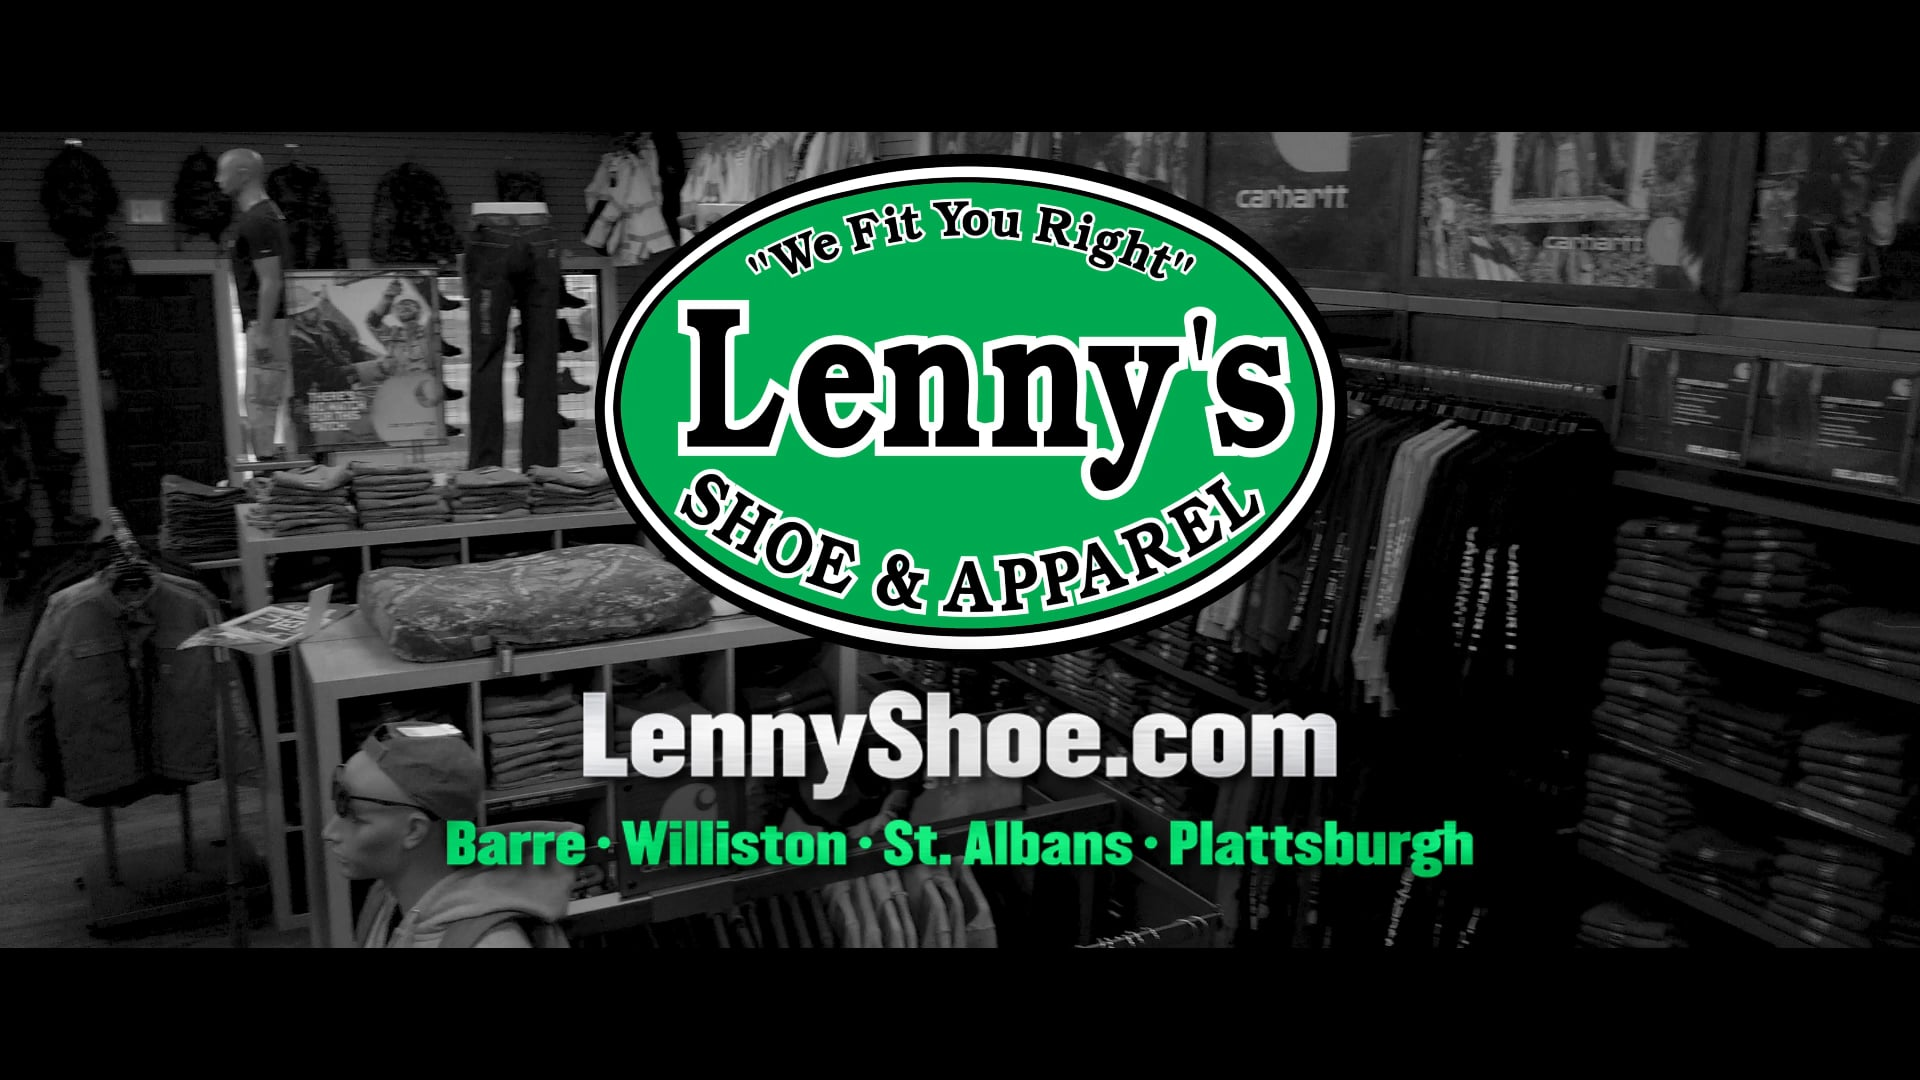 Lenny's Shoe & Apparel - Committed :30 TV